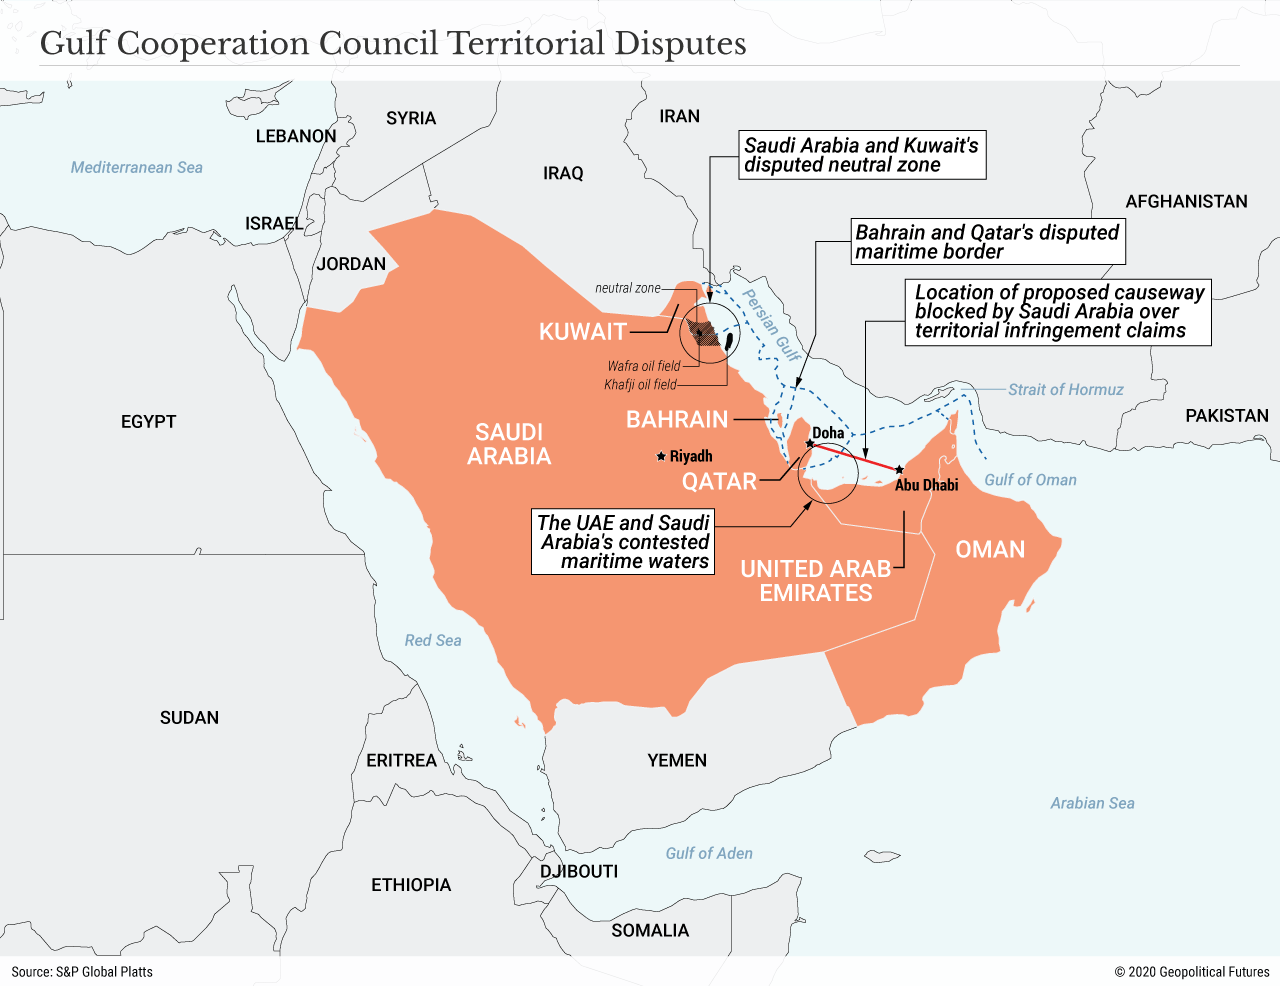 Gulf Cooperation Council Territorial Disputes